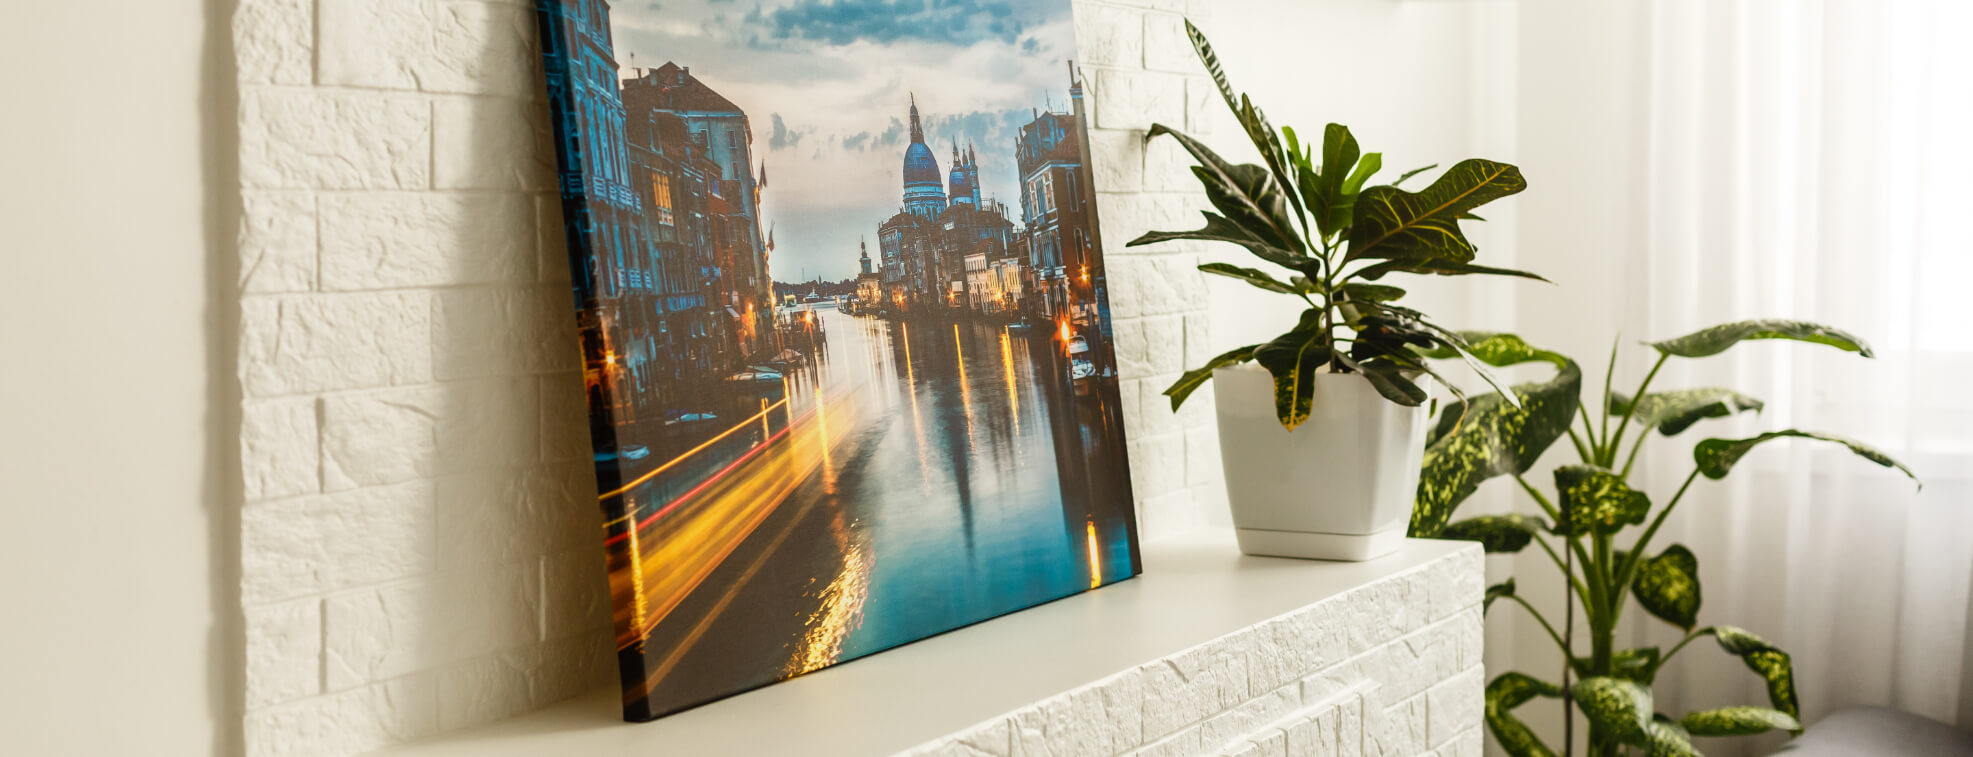 Favorite product of our customers classic canvas leaned agains a wall